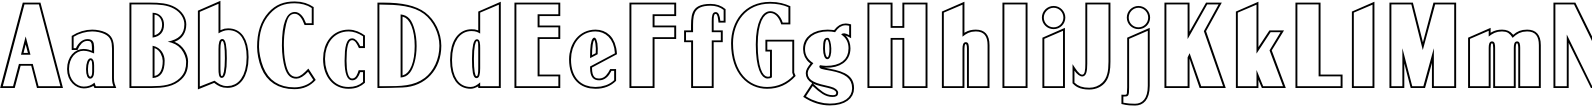 Globe Gothic MN Outline Font